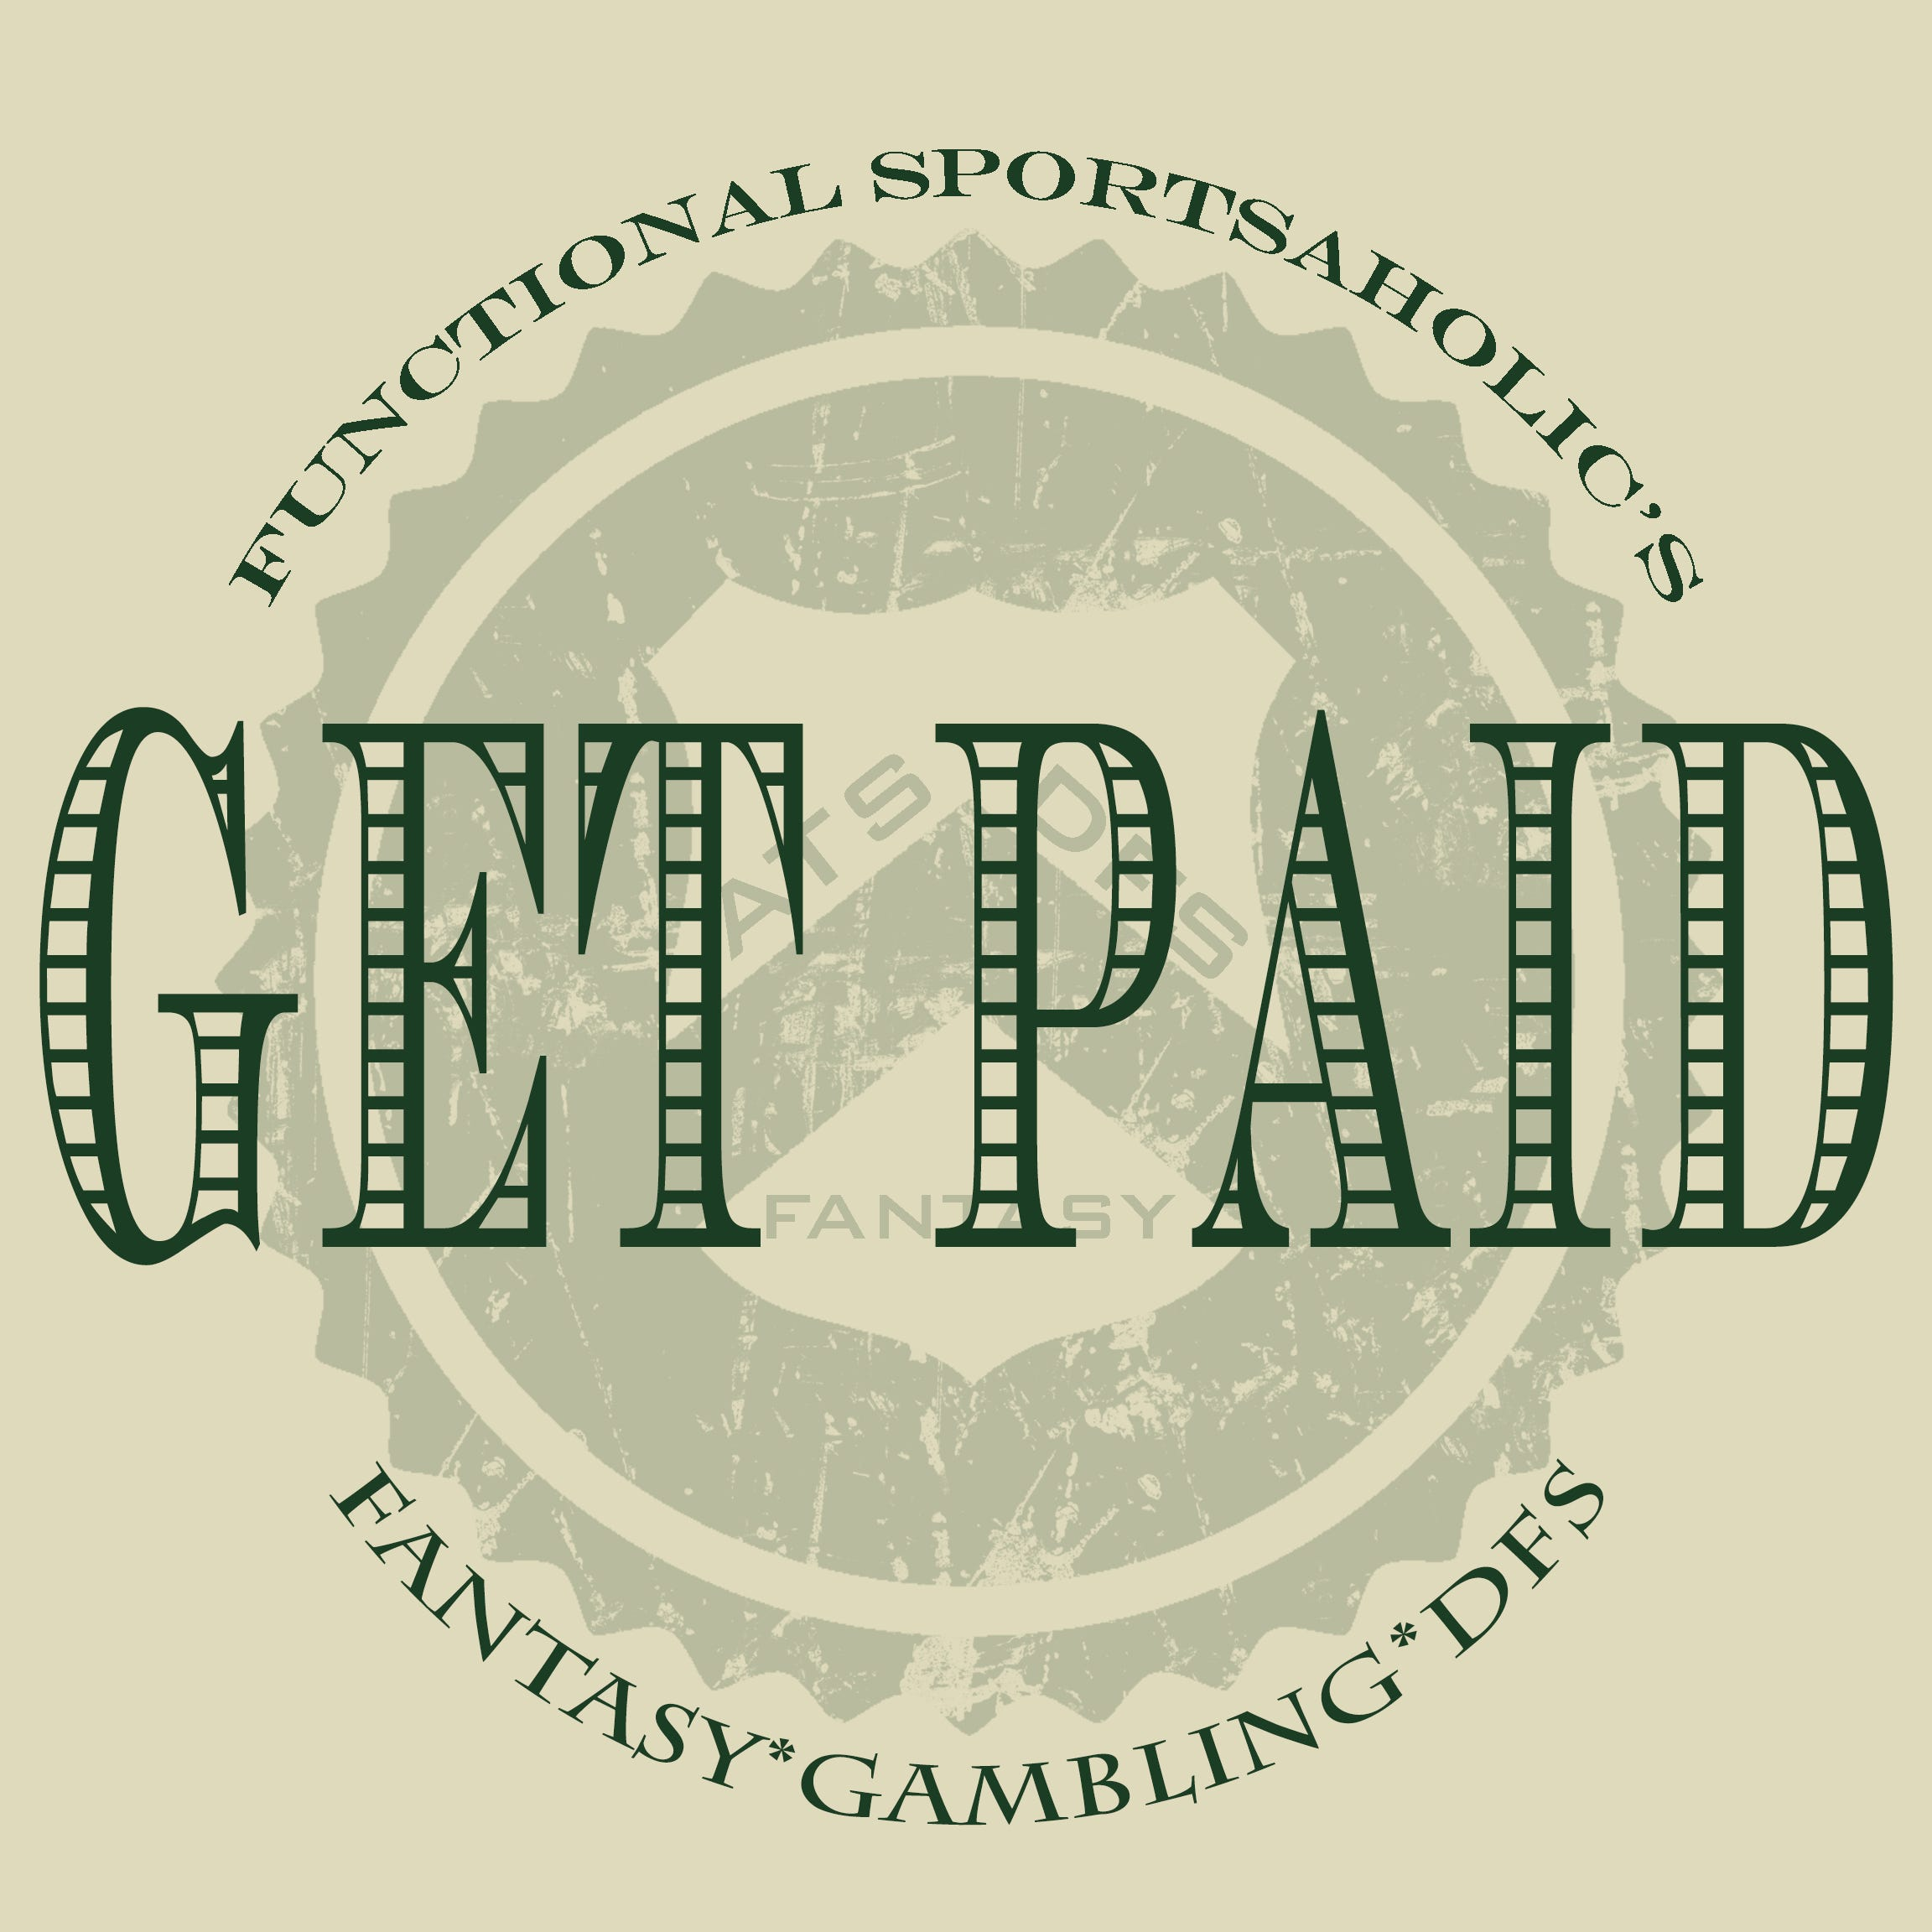 Get Paid: Fantasy, Gambling and DFS